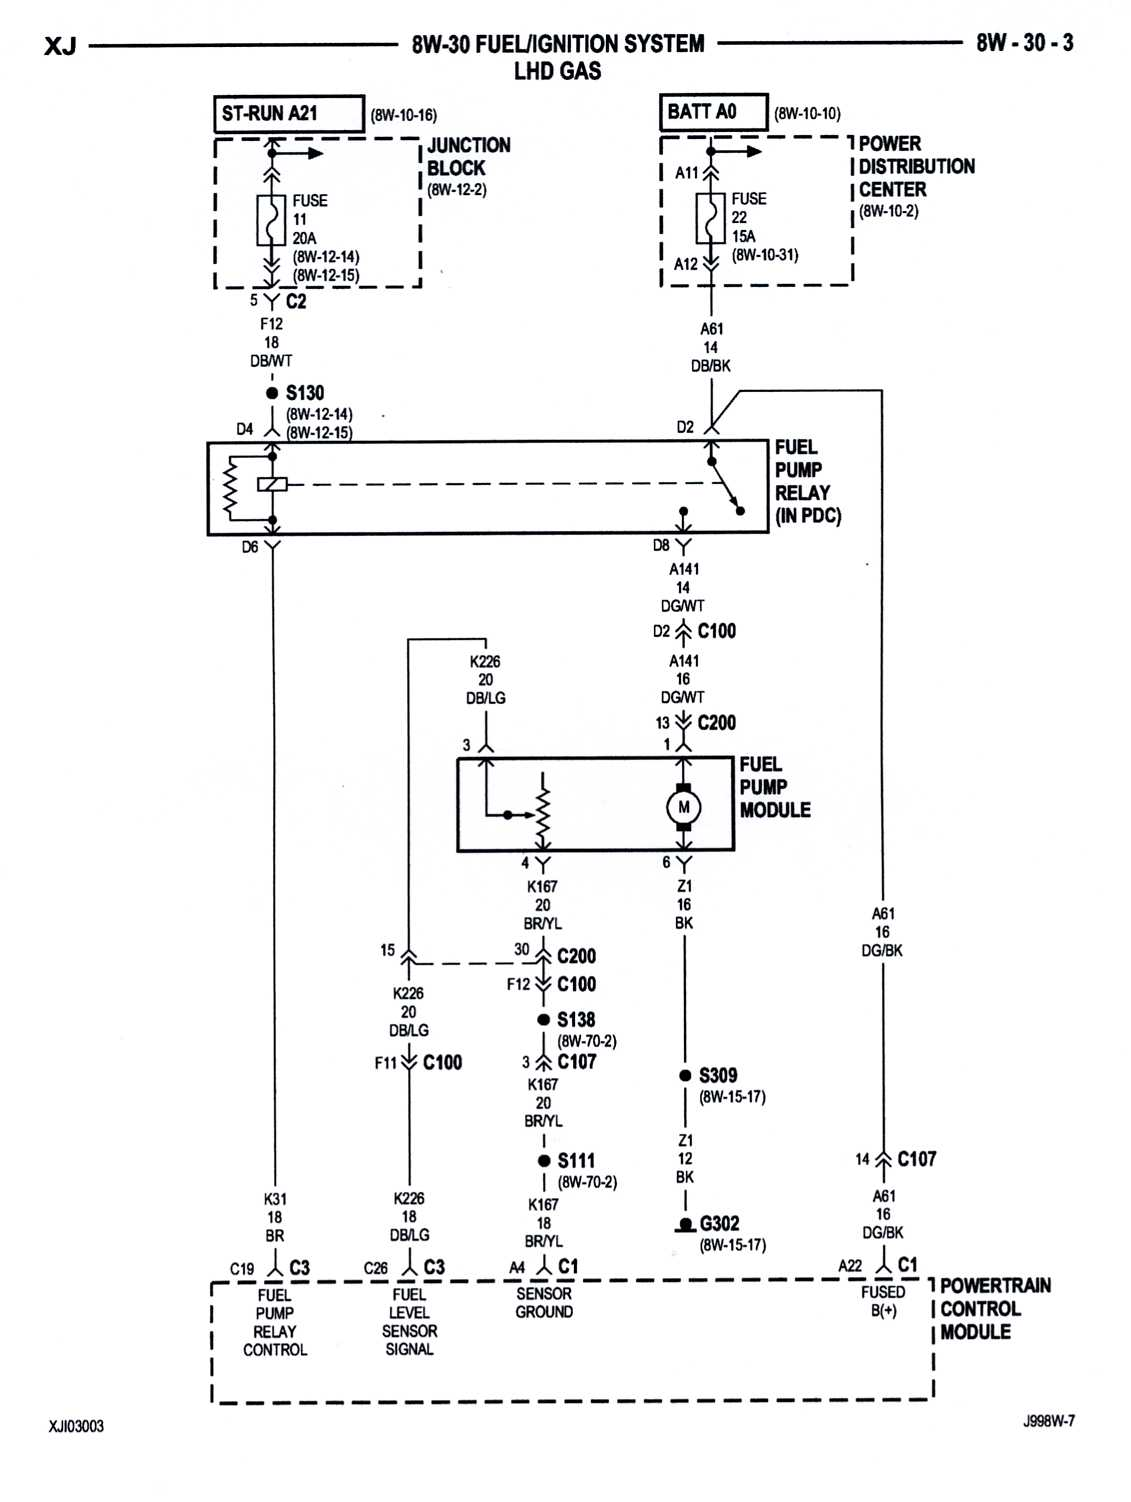 Wiring Diagram 1996 Jeep Cherokee Gauges Not Working. Jeep